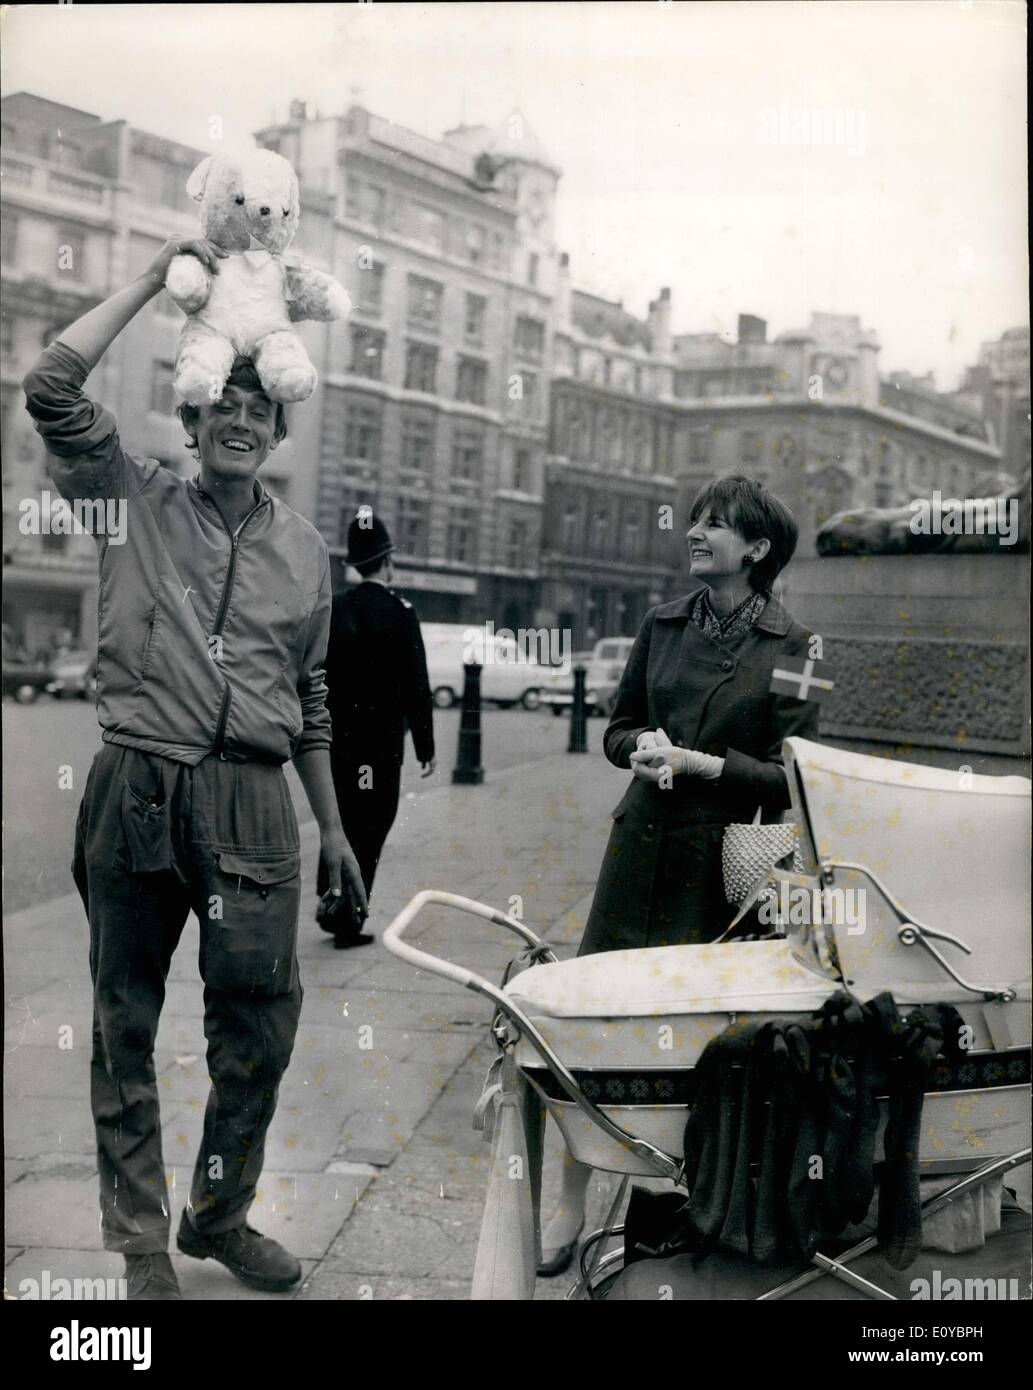 Aug. 08, 1969 - Pram Pusher Arrives At Trafalgar Square From Sweden; 23 year old bachelor, Mr. Lennart Jonsson, arrived at Trafalgar Square today, after having tramped 1,370 miles in 40 days fro stacknels, pushing a  The pram, and a teddy bear are presents for Mrs. Gail Fonelon. 24 of Lawastaft, who is expecting a baby anyday now. He stayed with her mother, Mrs. Constance Lamble of James Lane, Burgess Will, Sessex, When studying in Brighten in 1964-65. She was at Trafalgar Square to greet him. Photo Shows Mr. Lenmart Jonsson hands over the pram and teddy bear to Mrs - Stock Image